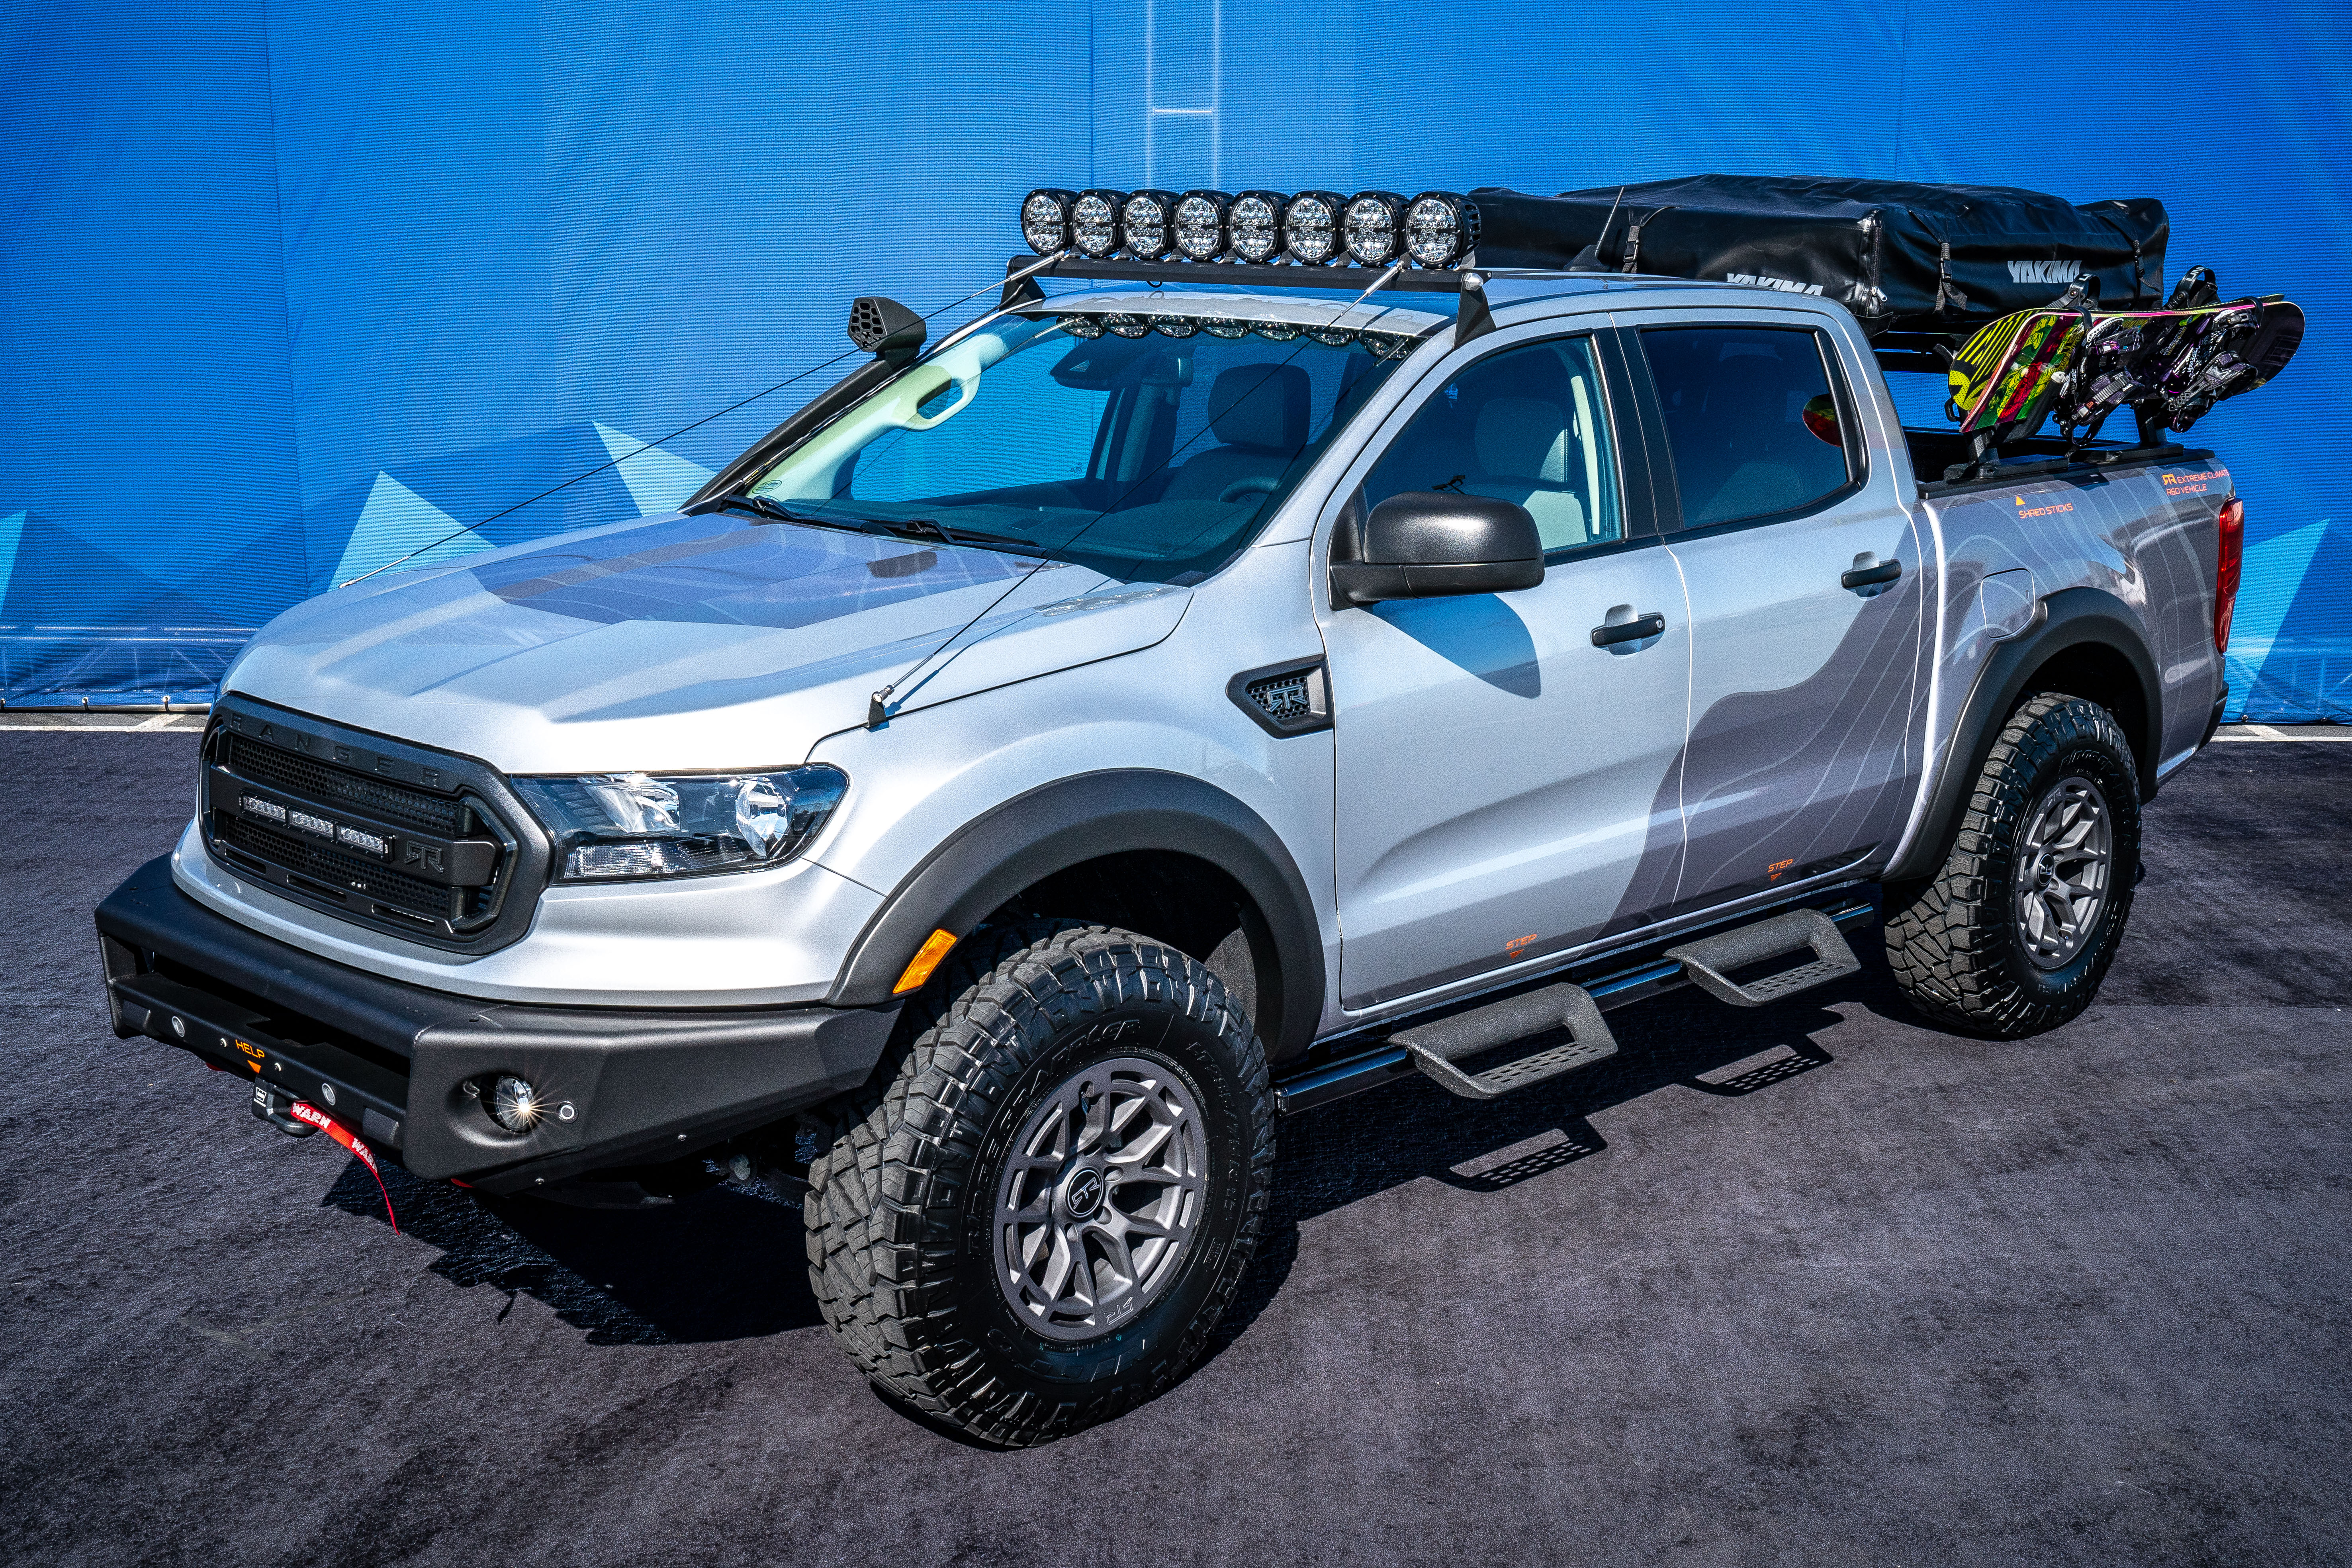 2019 Ford Ranger Rambler Concept By Rtr